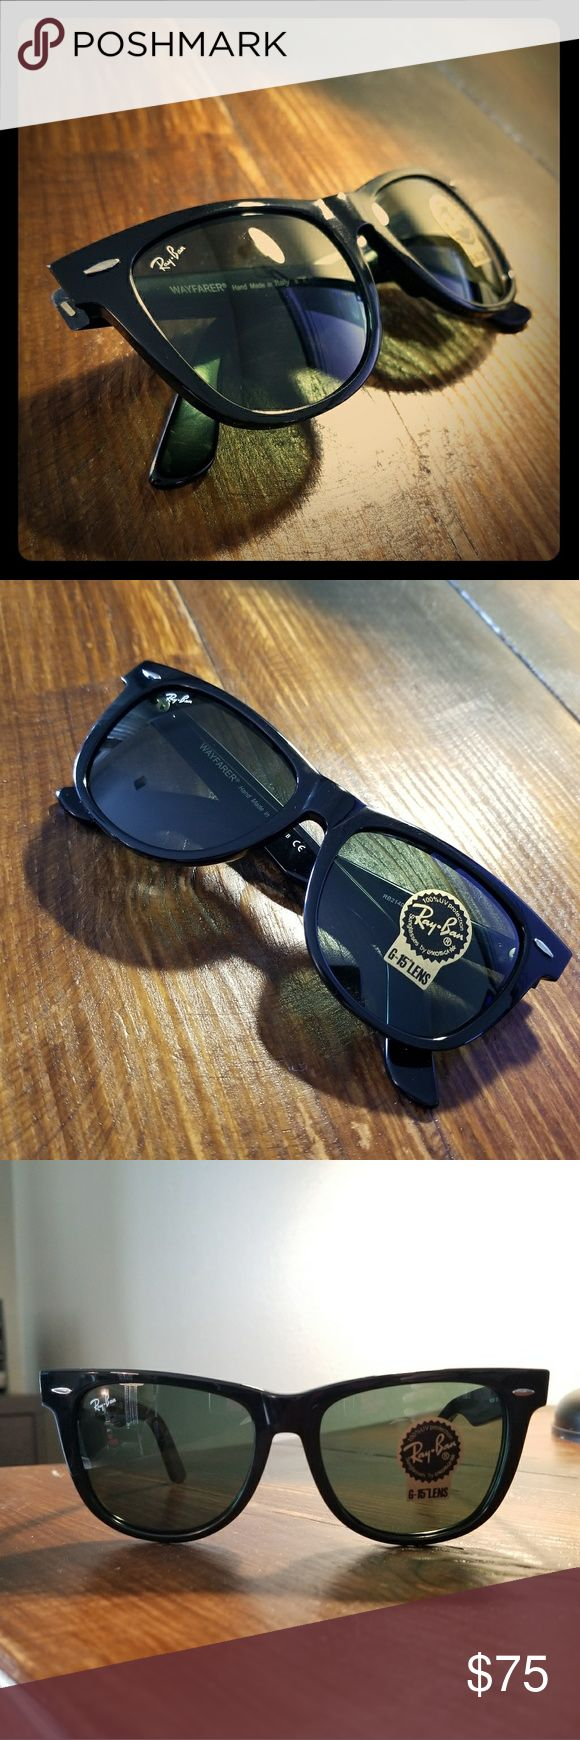 Ray Ban WAYFARER with G-15 lens Unisex Bridge Size: 18mm Eye Size:  54mm  Temple Length:  150mm  Case and Cloth included Ray-Ban Accessories Sunglasses